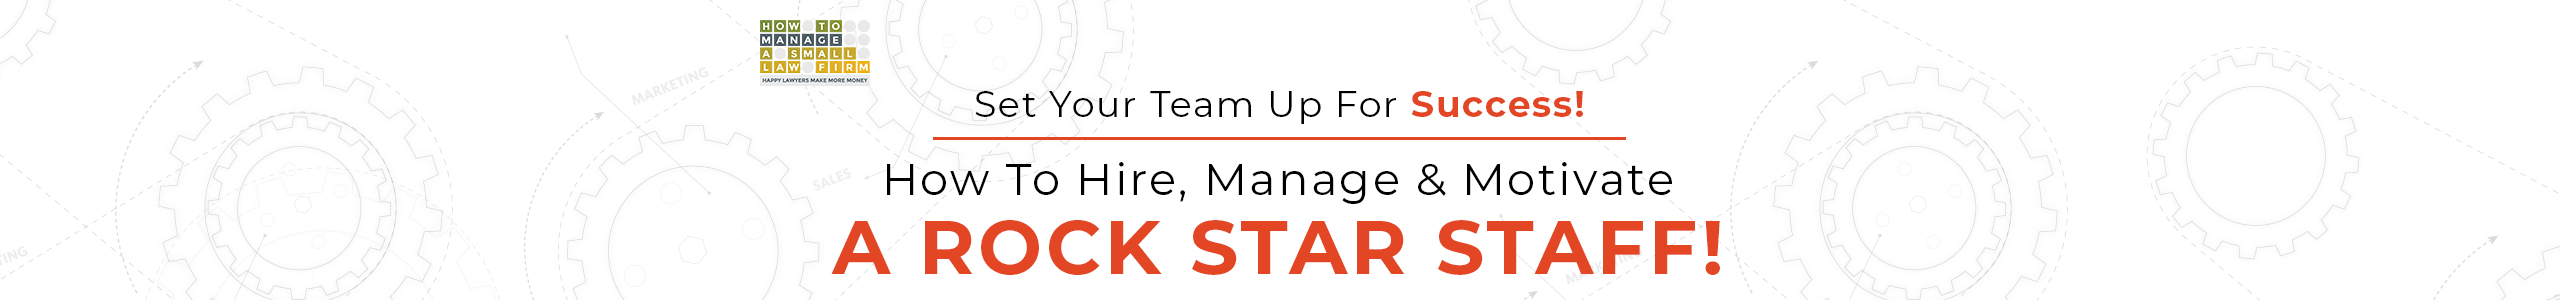 set your team up for success how to hire, manage and motivate a rock star staff!